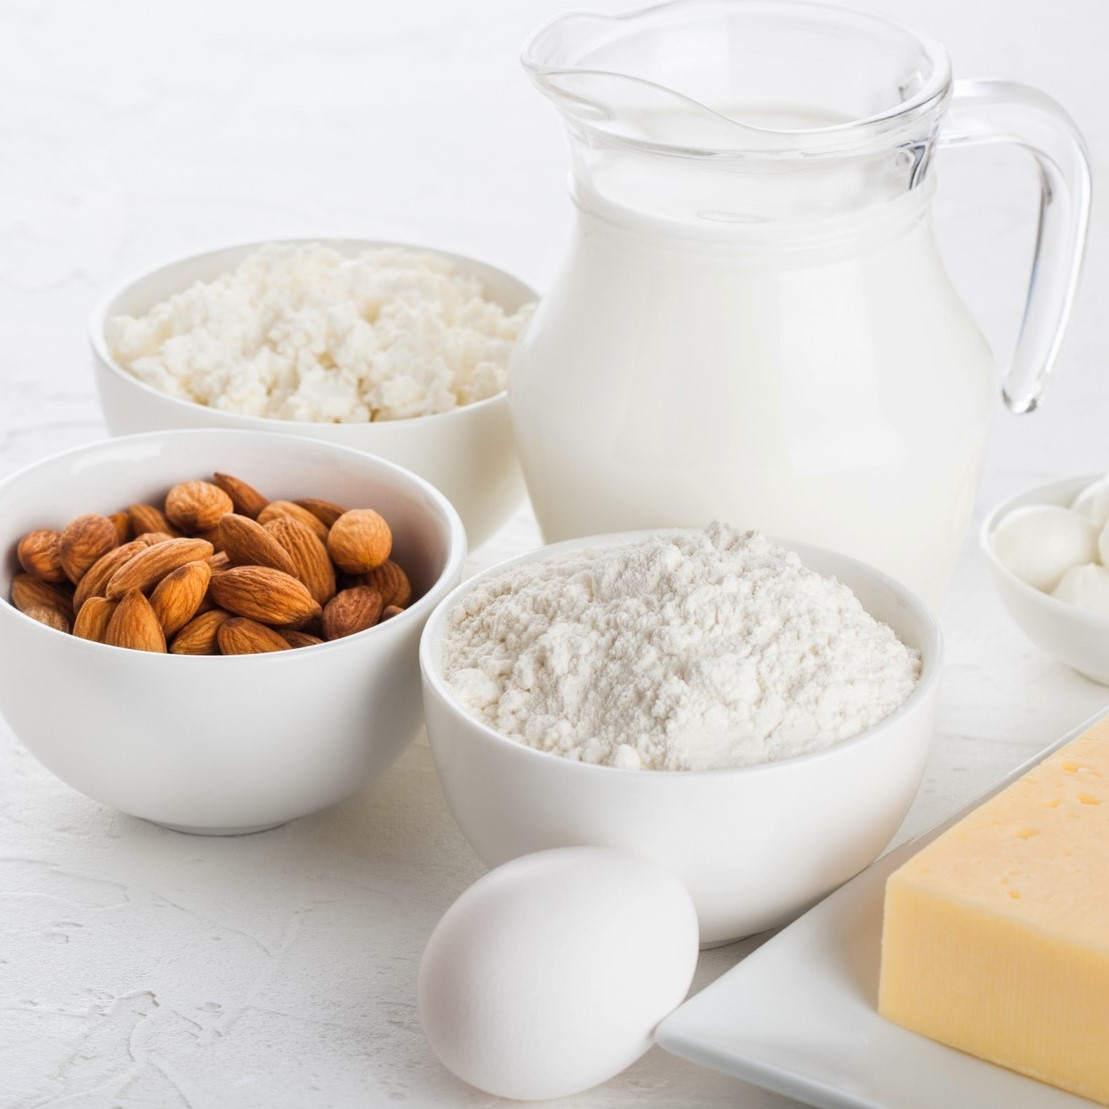 Glass jar of milk, bowl of cottage cheese, baking flour, almond, and eggs on table.